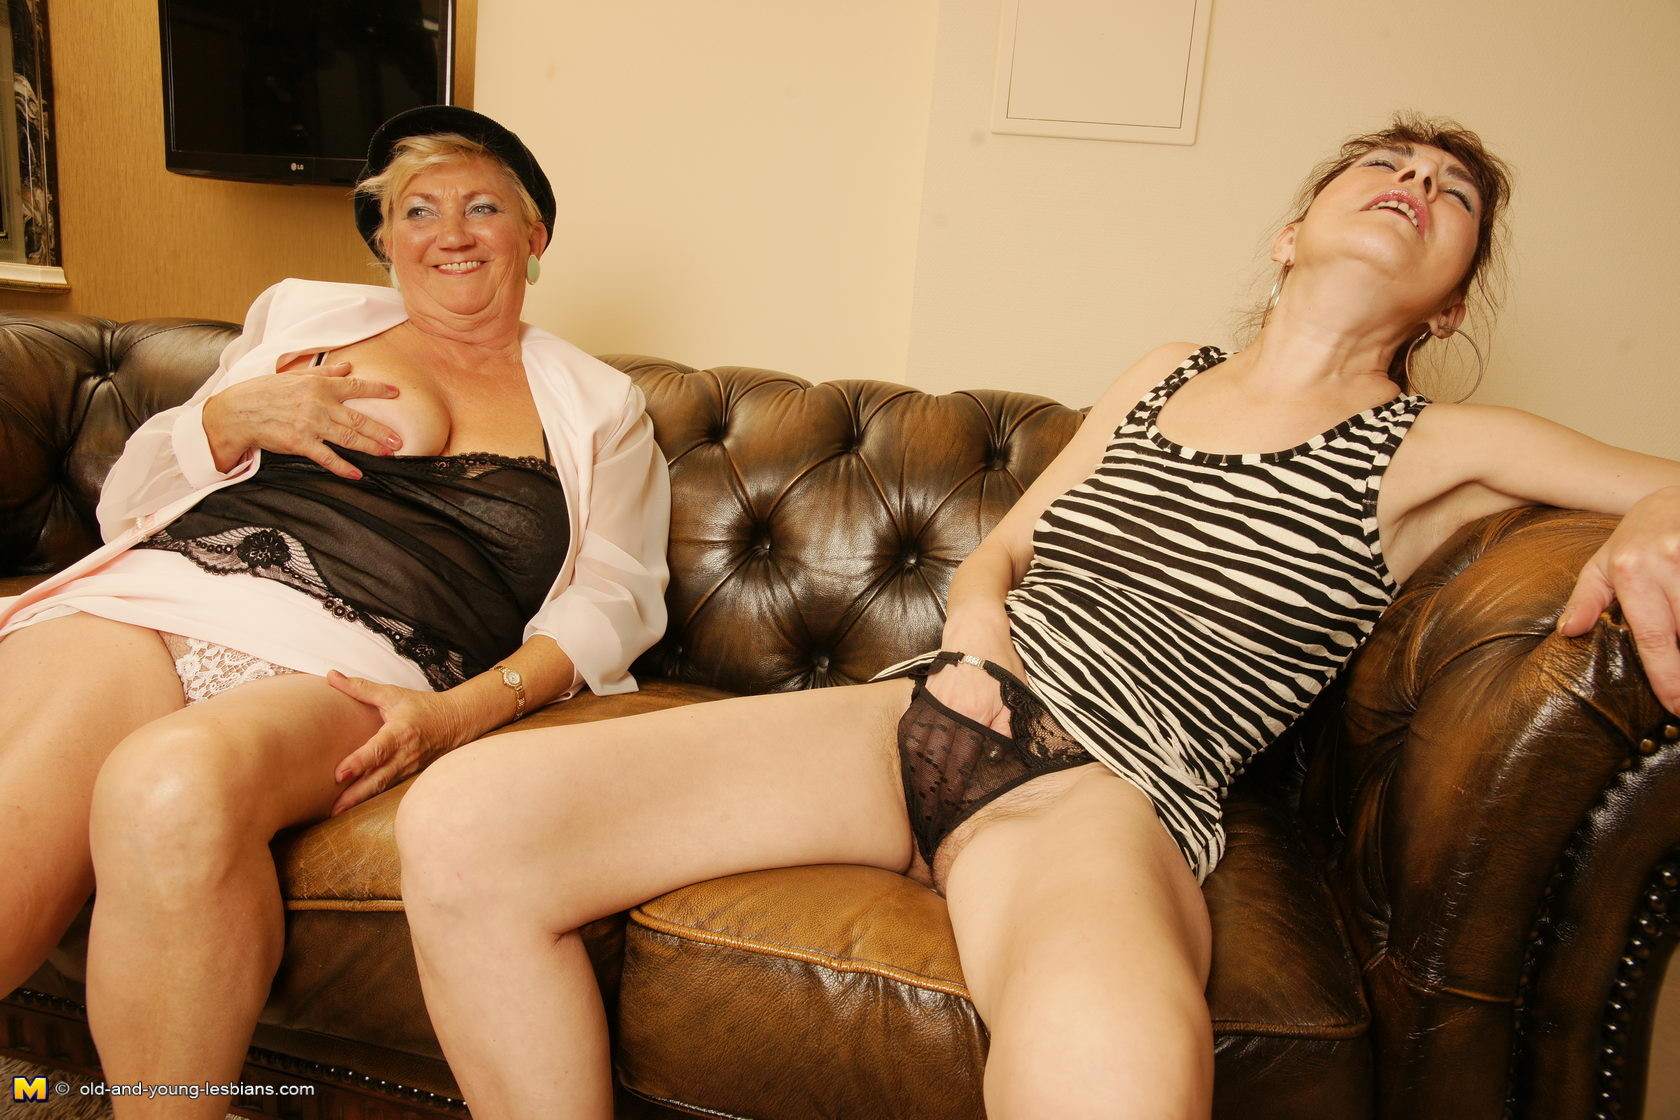 Drunk nude mature lesbians was and